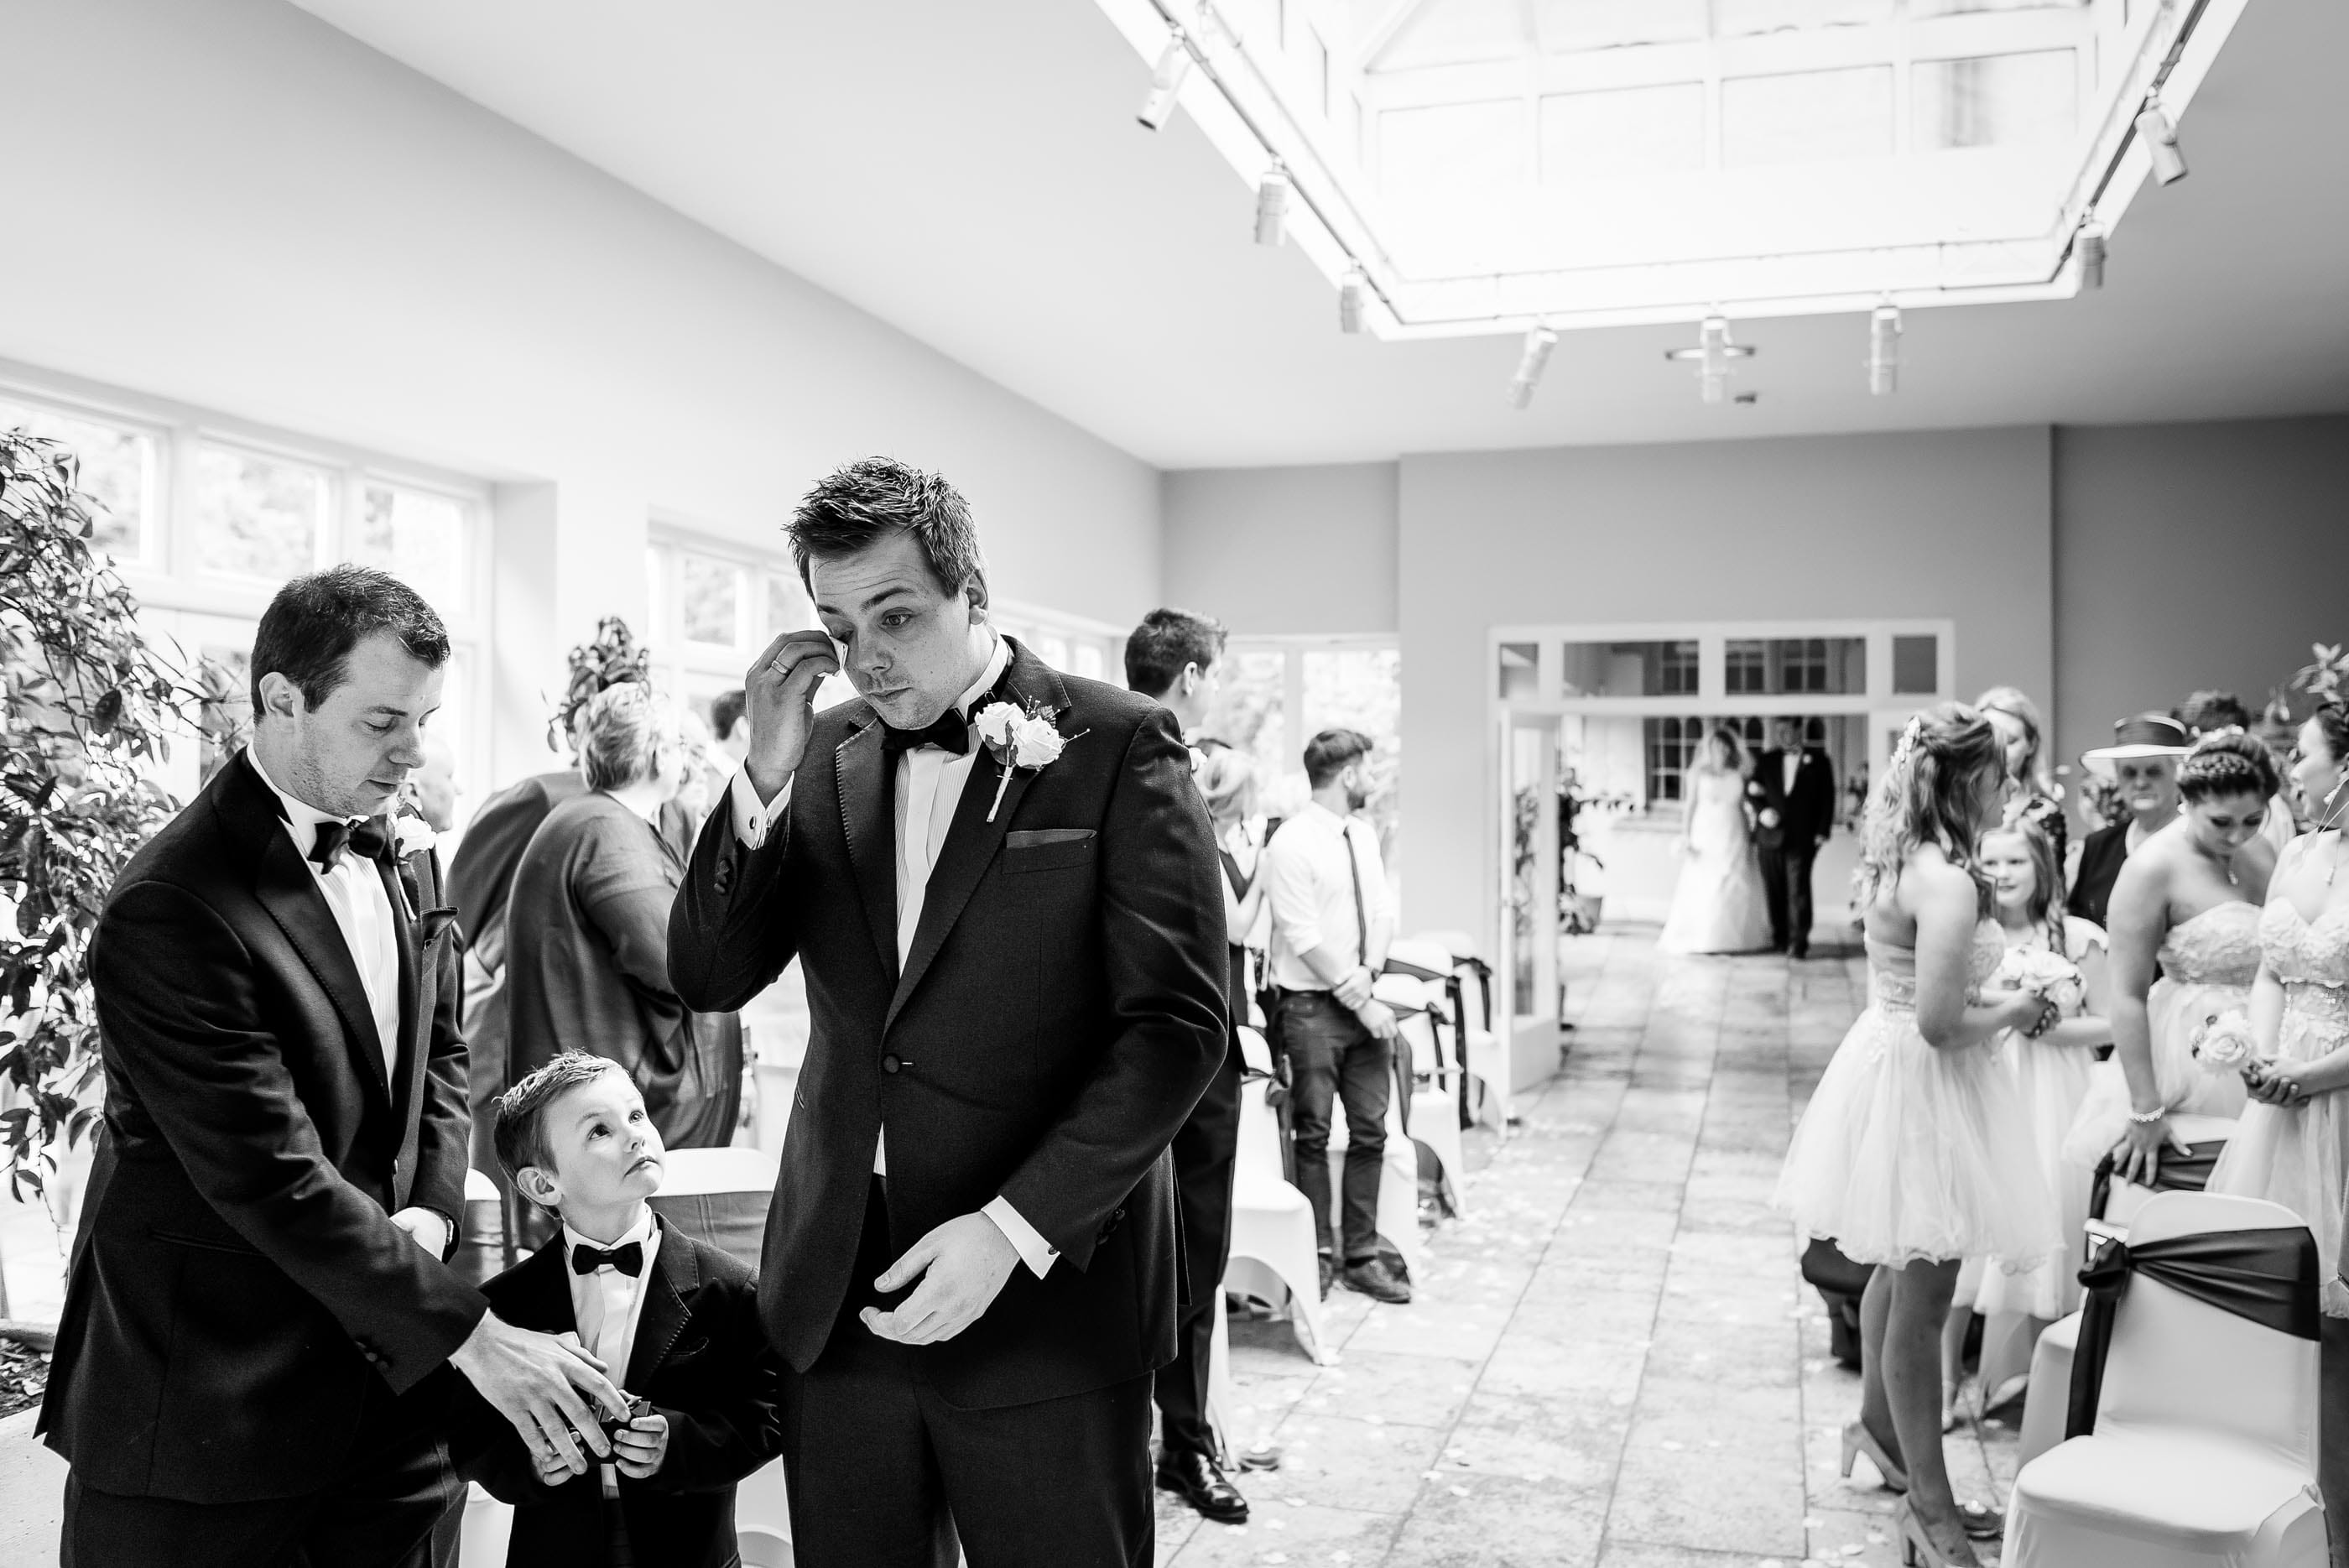 Groom wipes away a tear as soon watches. Just as bride walks down the aisle